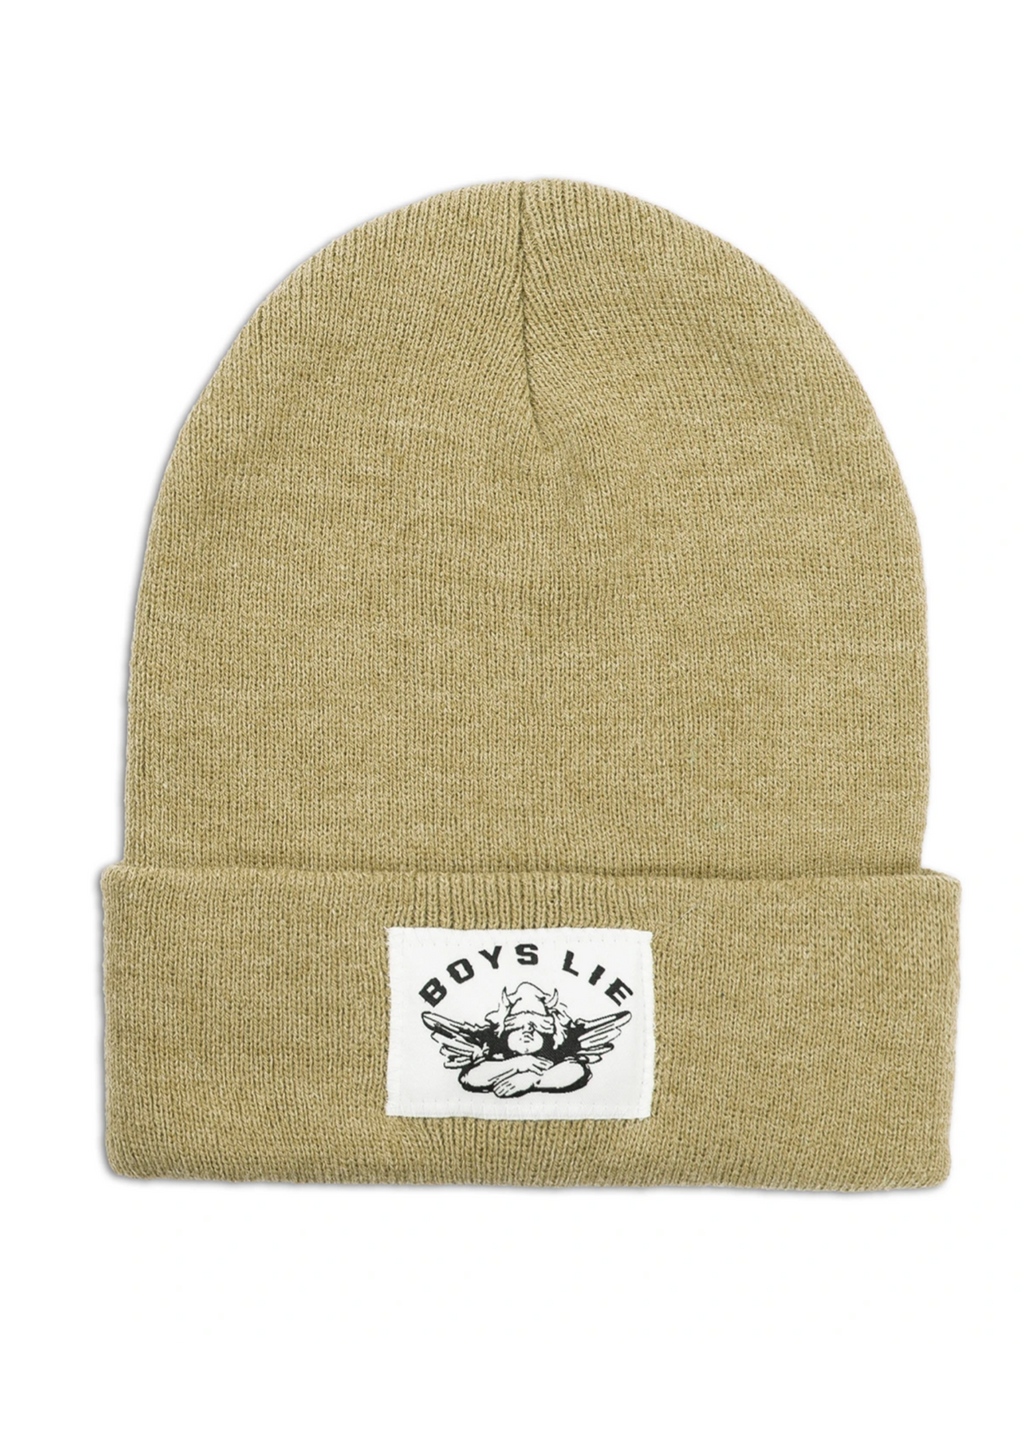 Boys Lie Beanie ★ Camel - Rock N Rags